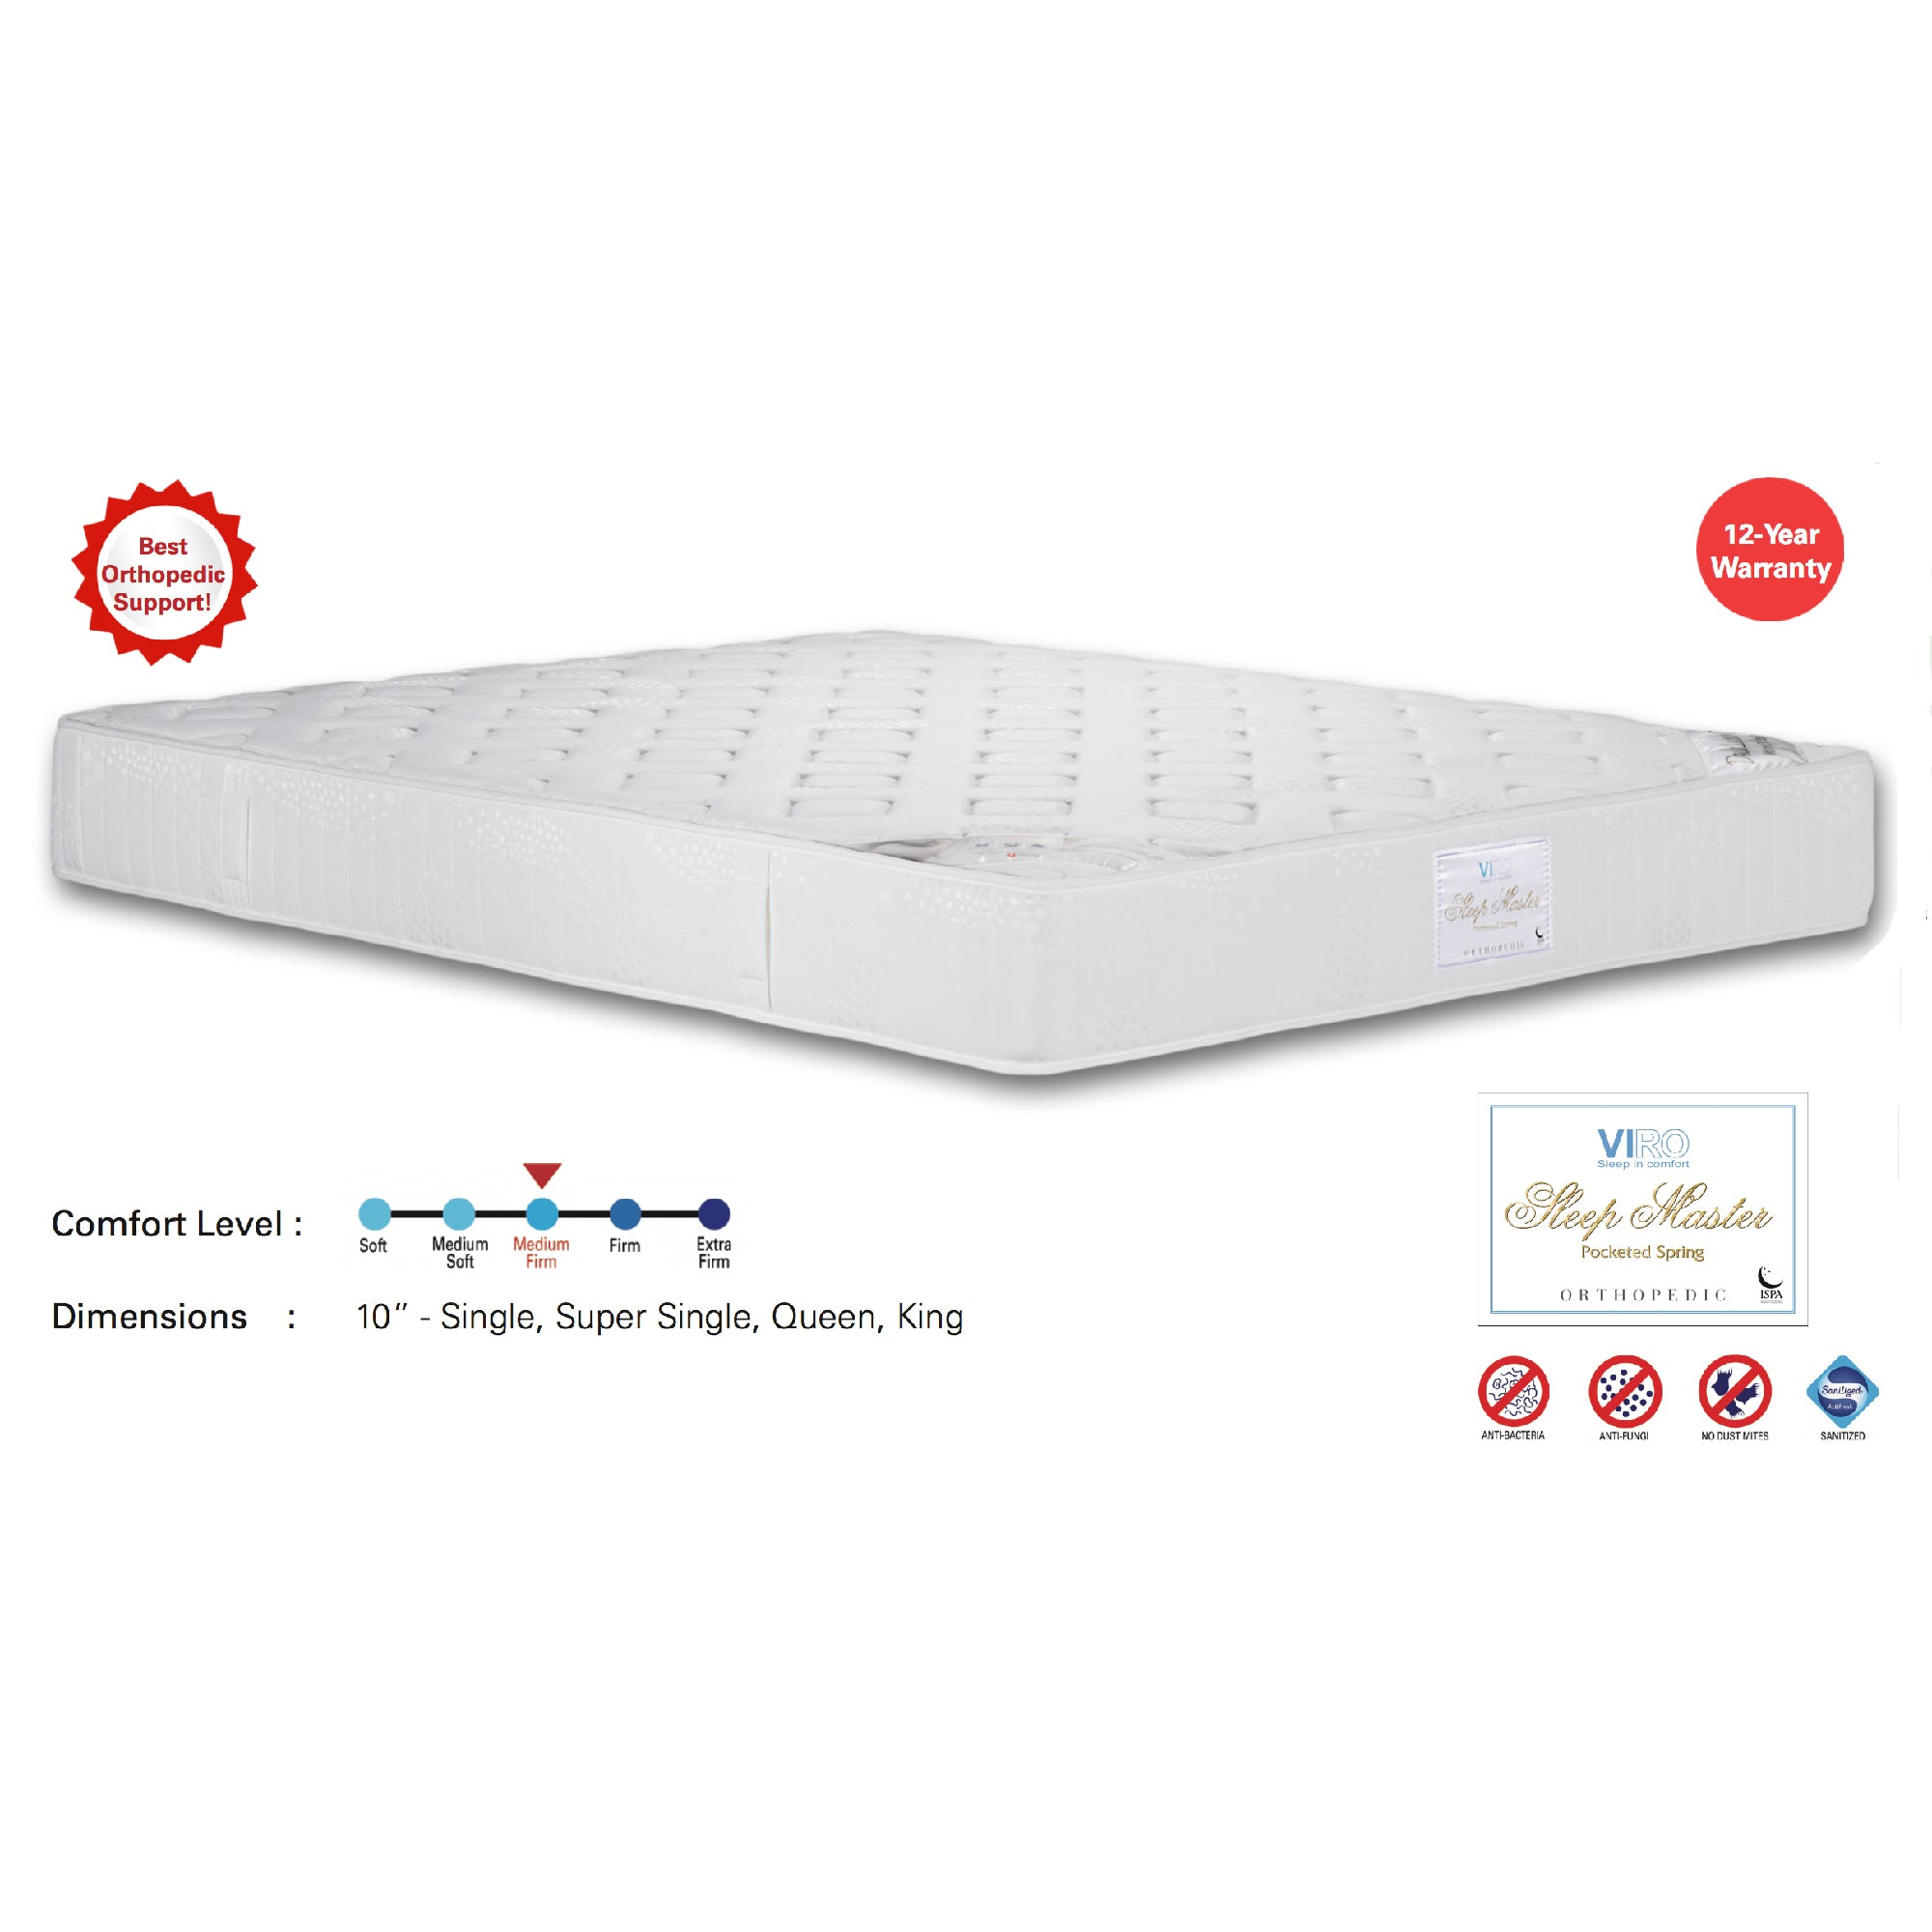 Viro Sleep Master Pocketed Spring Mattress (3 Feet Single Size x 10